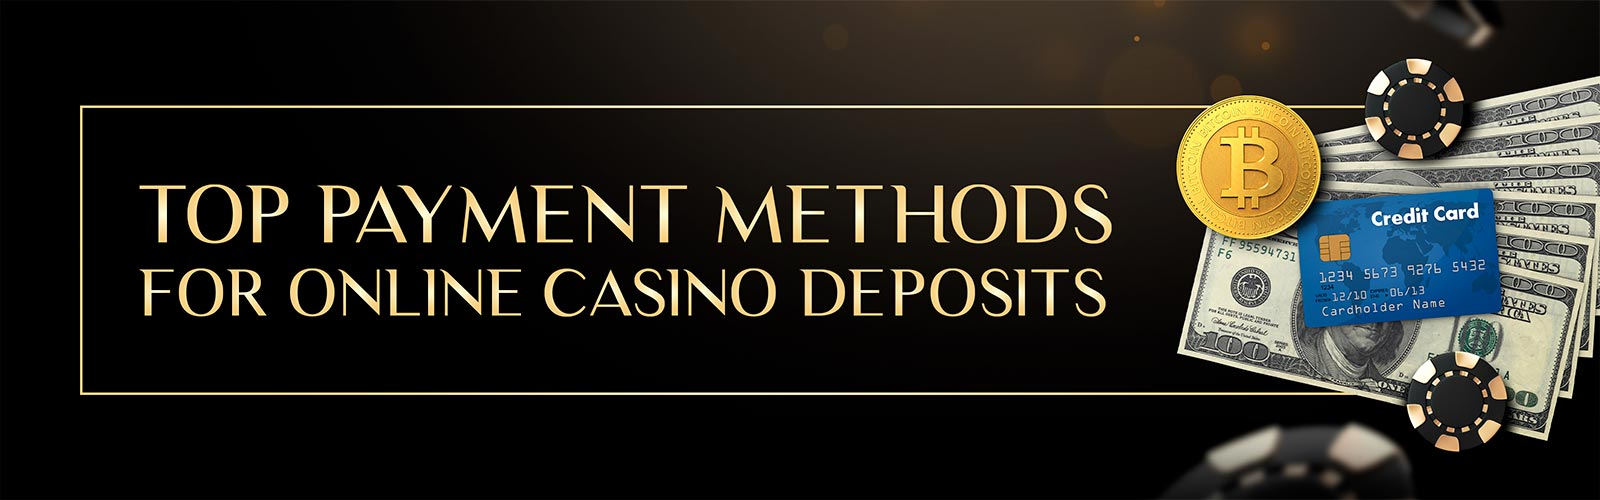 Popular payment methods for online casino deposits